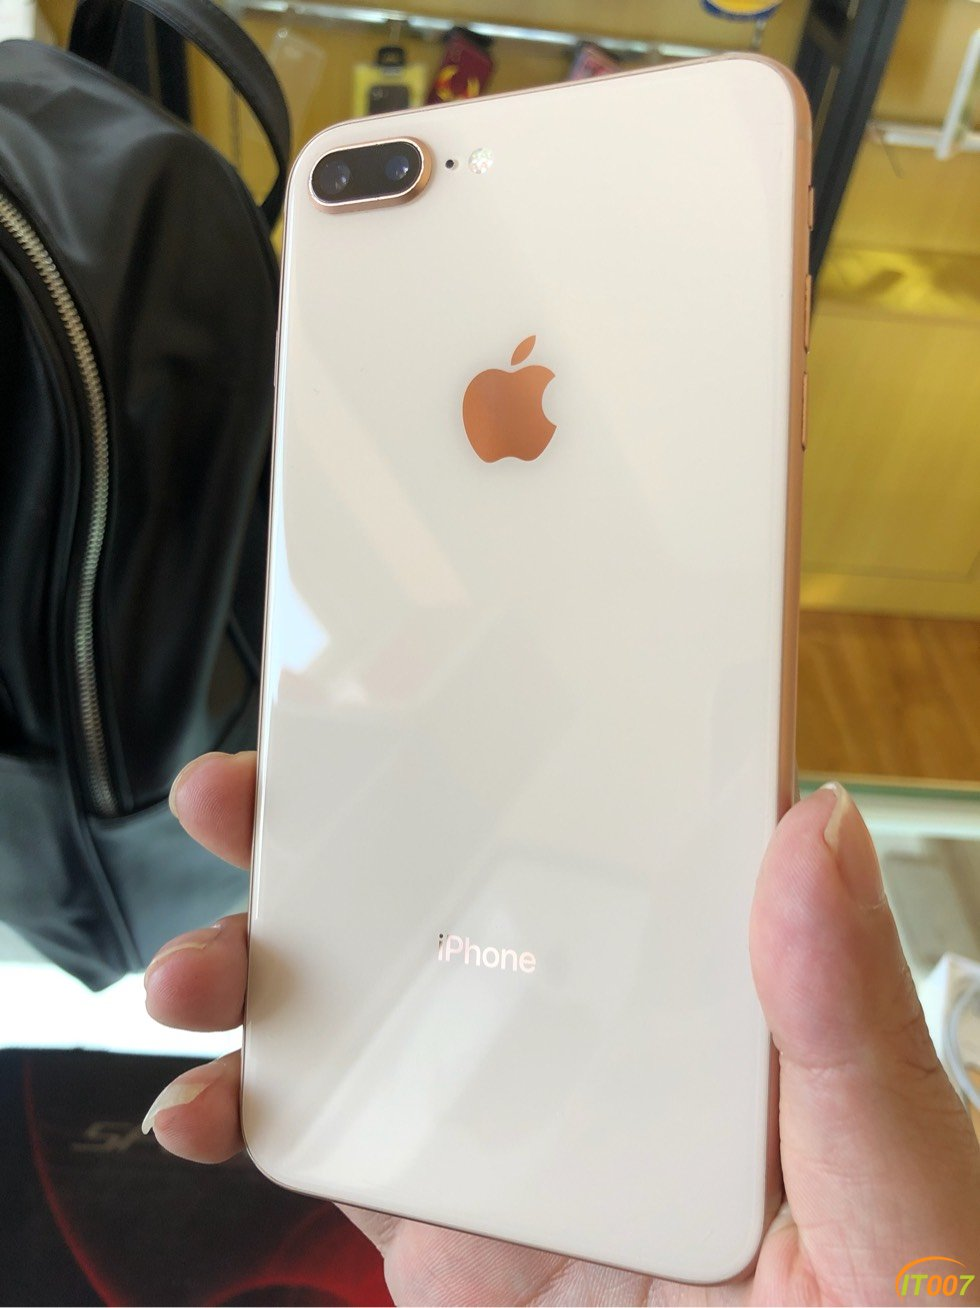 iphone8plus 64g 国行 9新成色 金色纯原